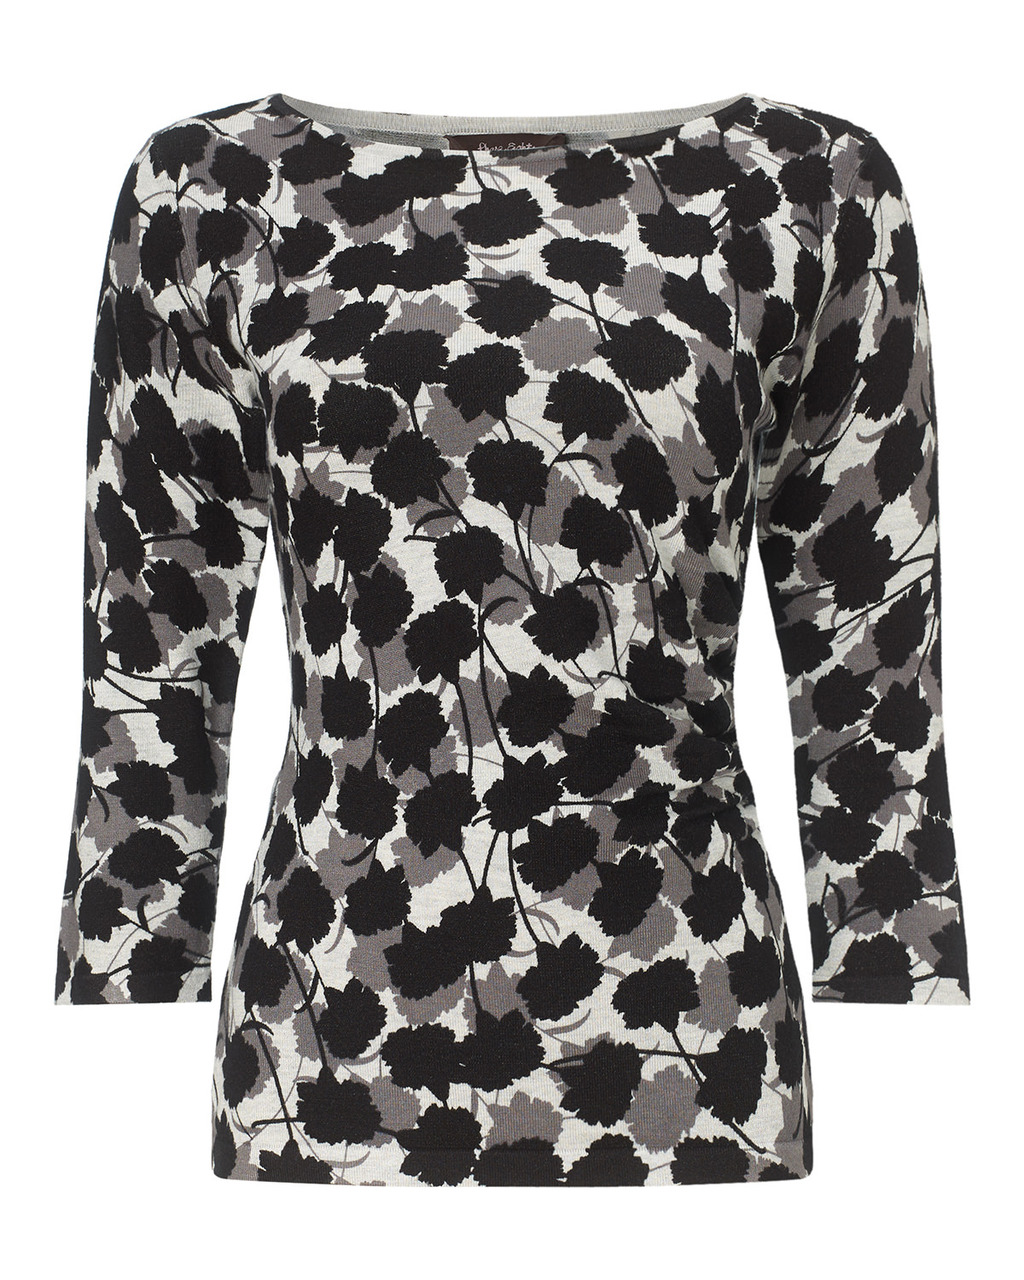 Leilani Print Knit Top - neckline: slash/boat neckline; secondary colour: mid grey; predominant colour: black; occasions: casual; length: standard; style: top; fit: body skimming; sleeve length: 3/4 length; sleeve style: standard; pattern type: fabric; pattern: florals; texture group: jersey - stretchy/drapey; fibres: viscose/rayon - mix; multicoloured: multicoloured; season: a/w 2015; wardrobe: highlight